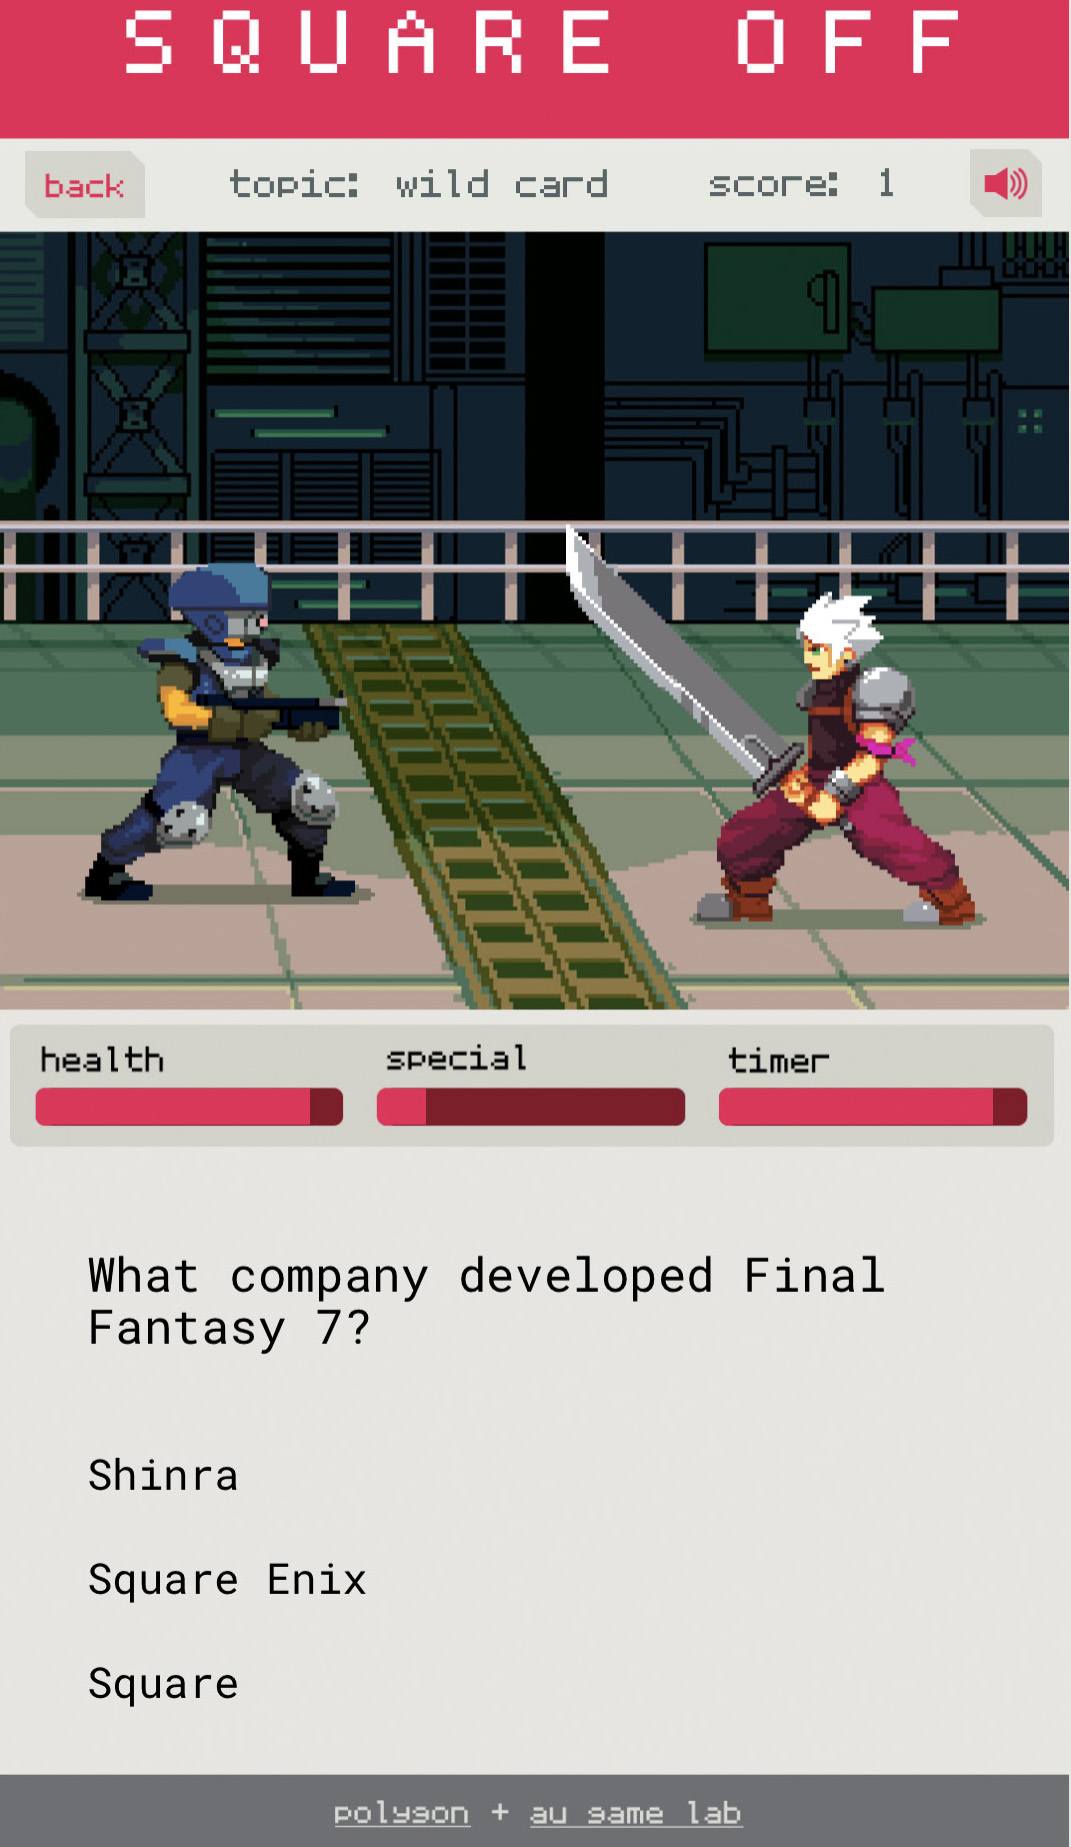 Test your knowledge on Final Fantasy 7's game development, lore and culture